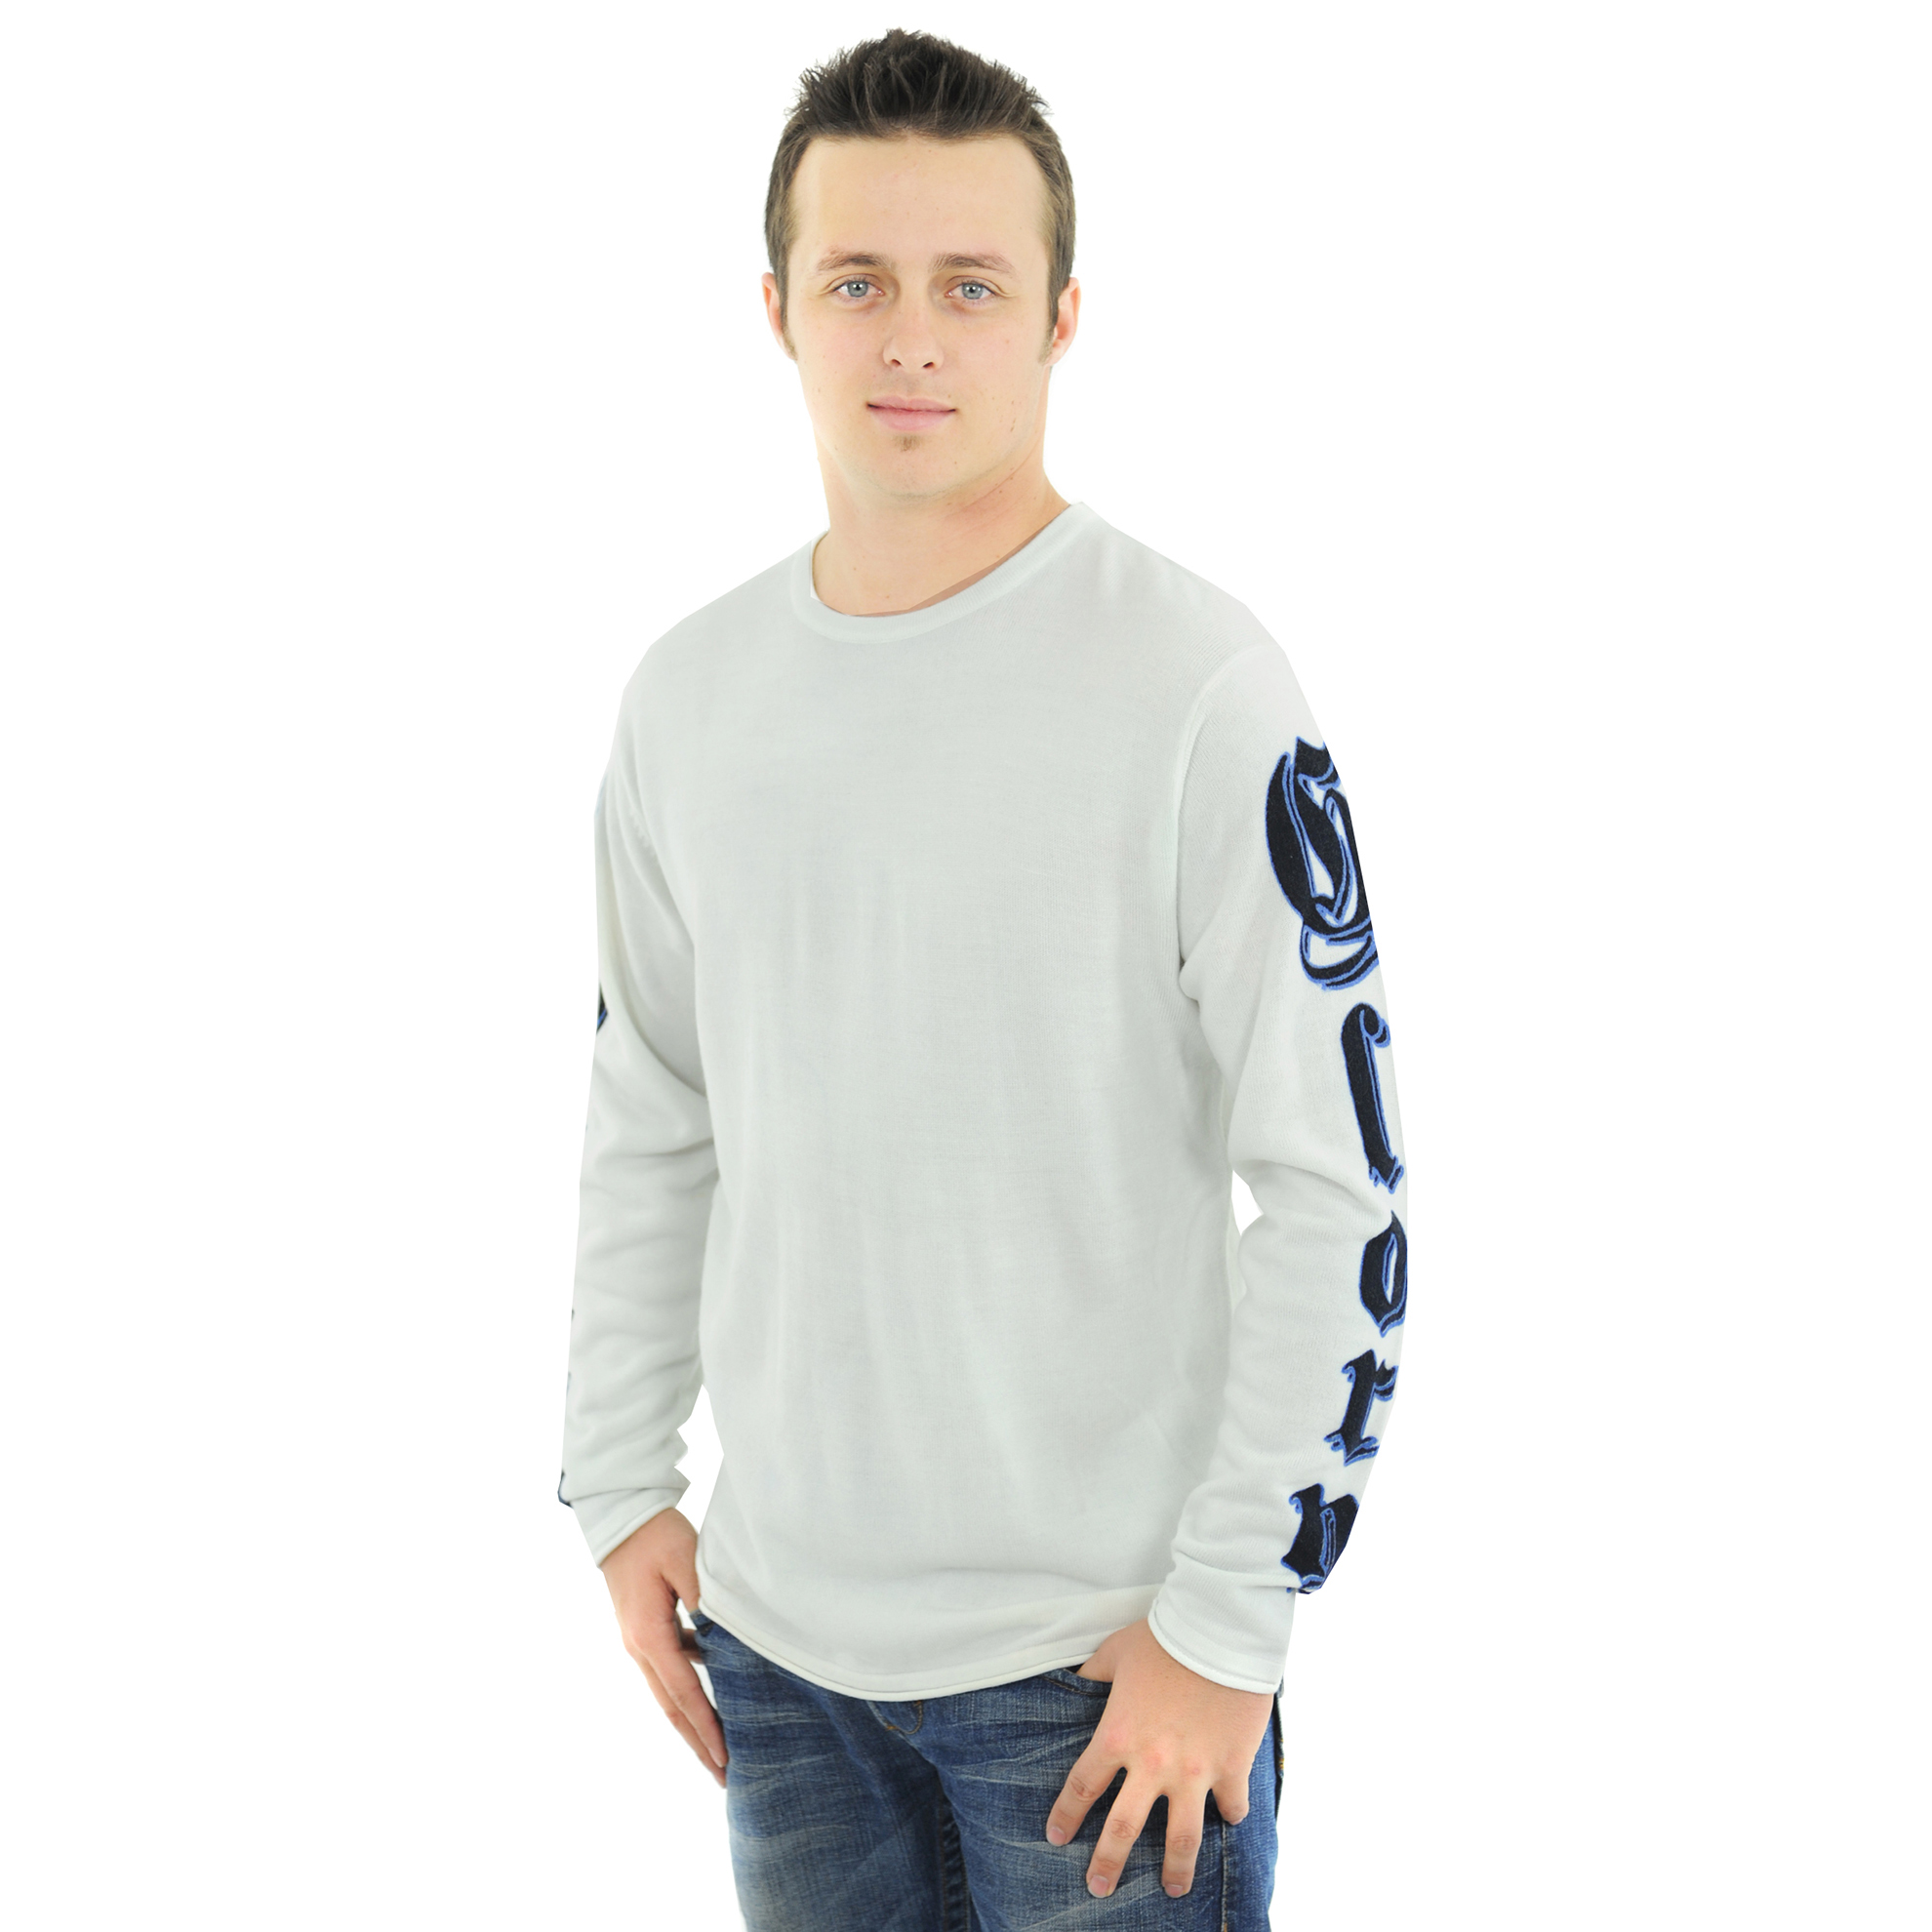 RAW-7 G09H03-IVRY-PANTHER RAW7 Men's 100% Acrylic Crewneck Sweater Panther Design - Ivory